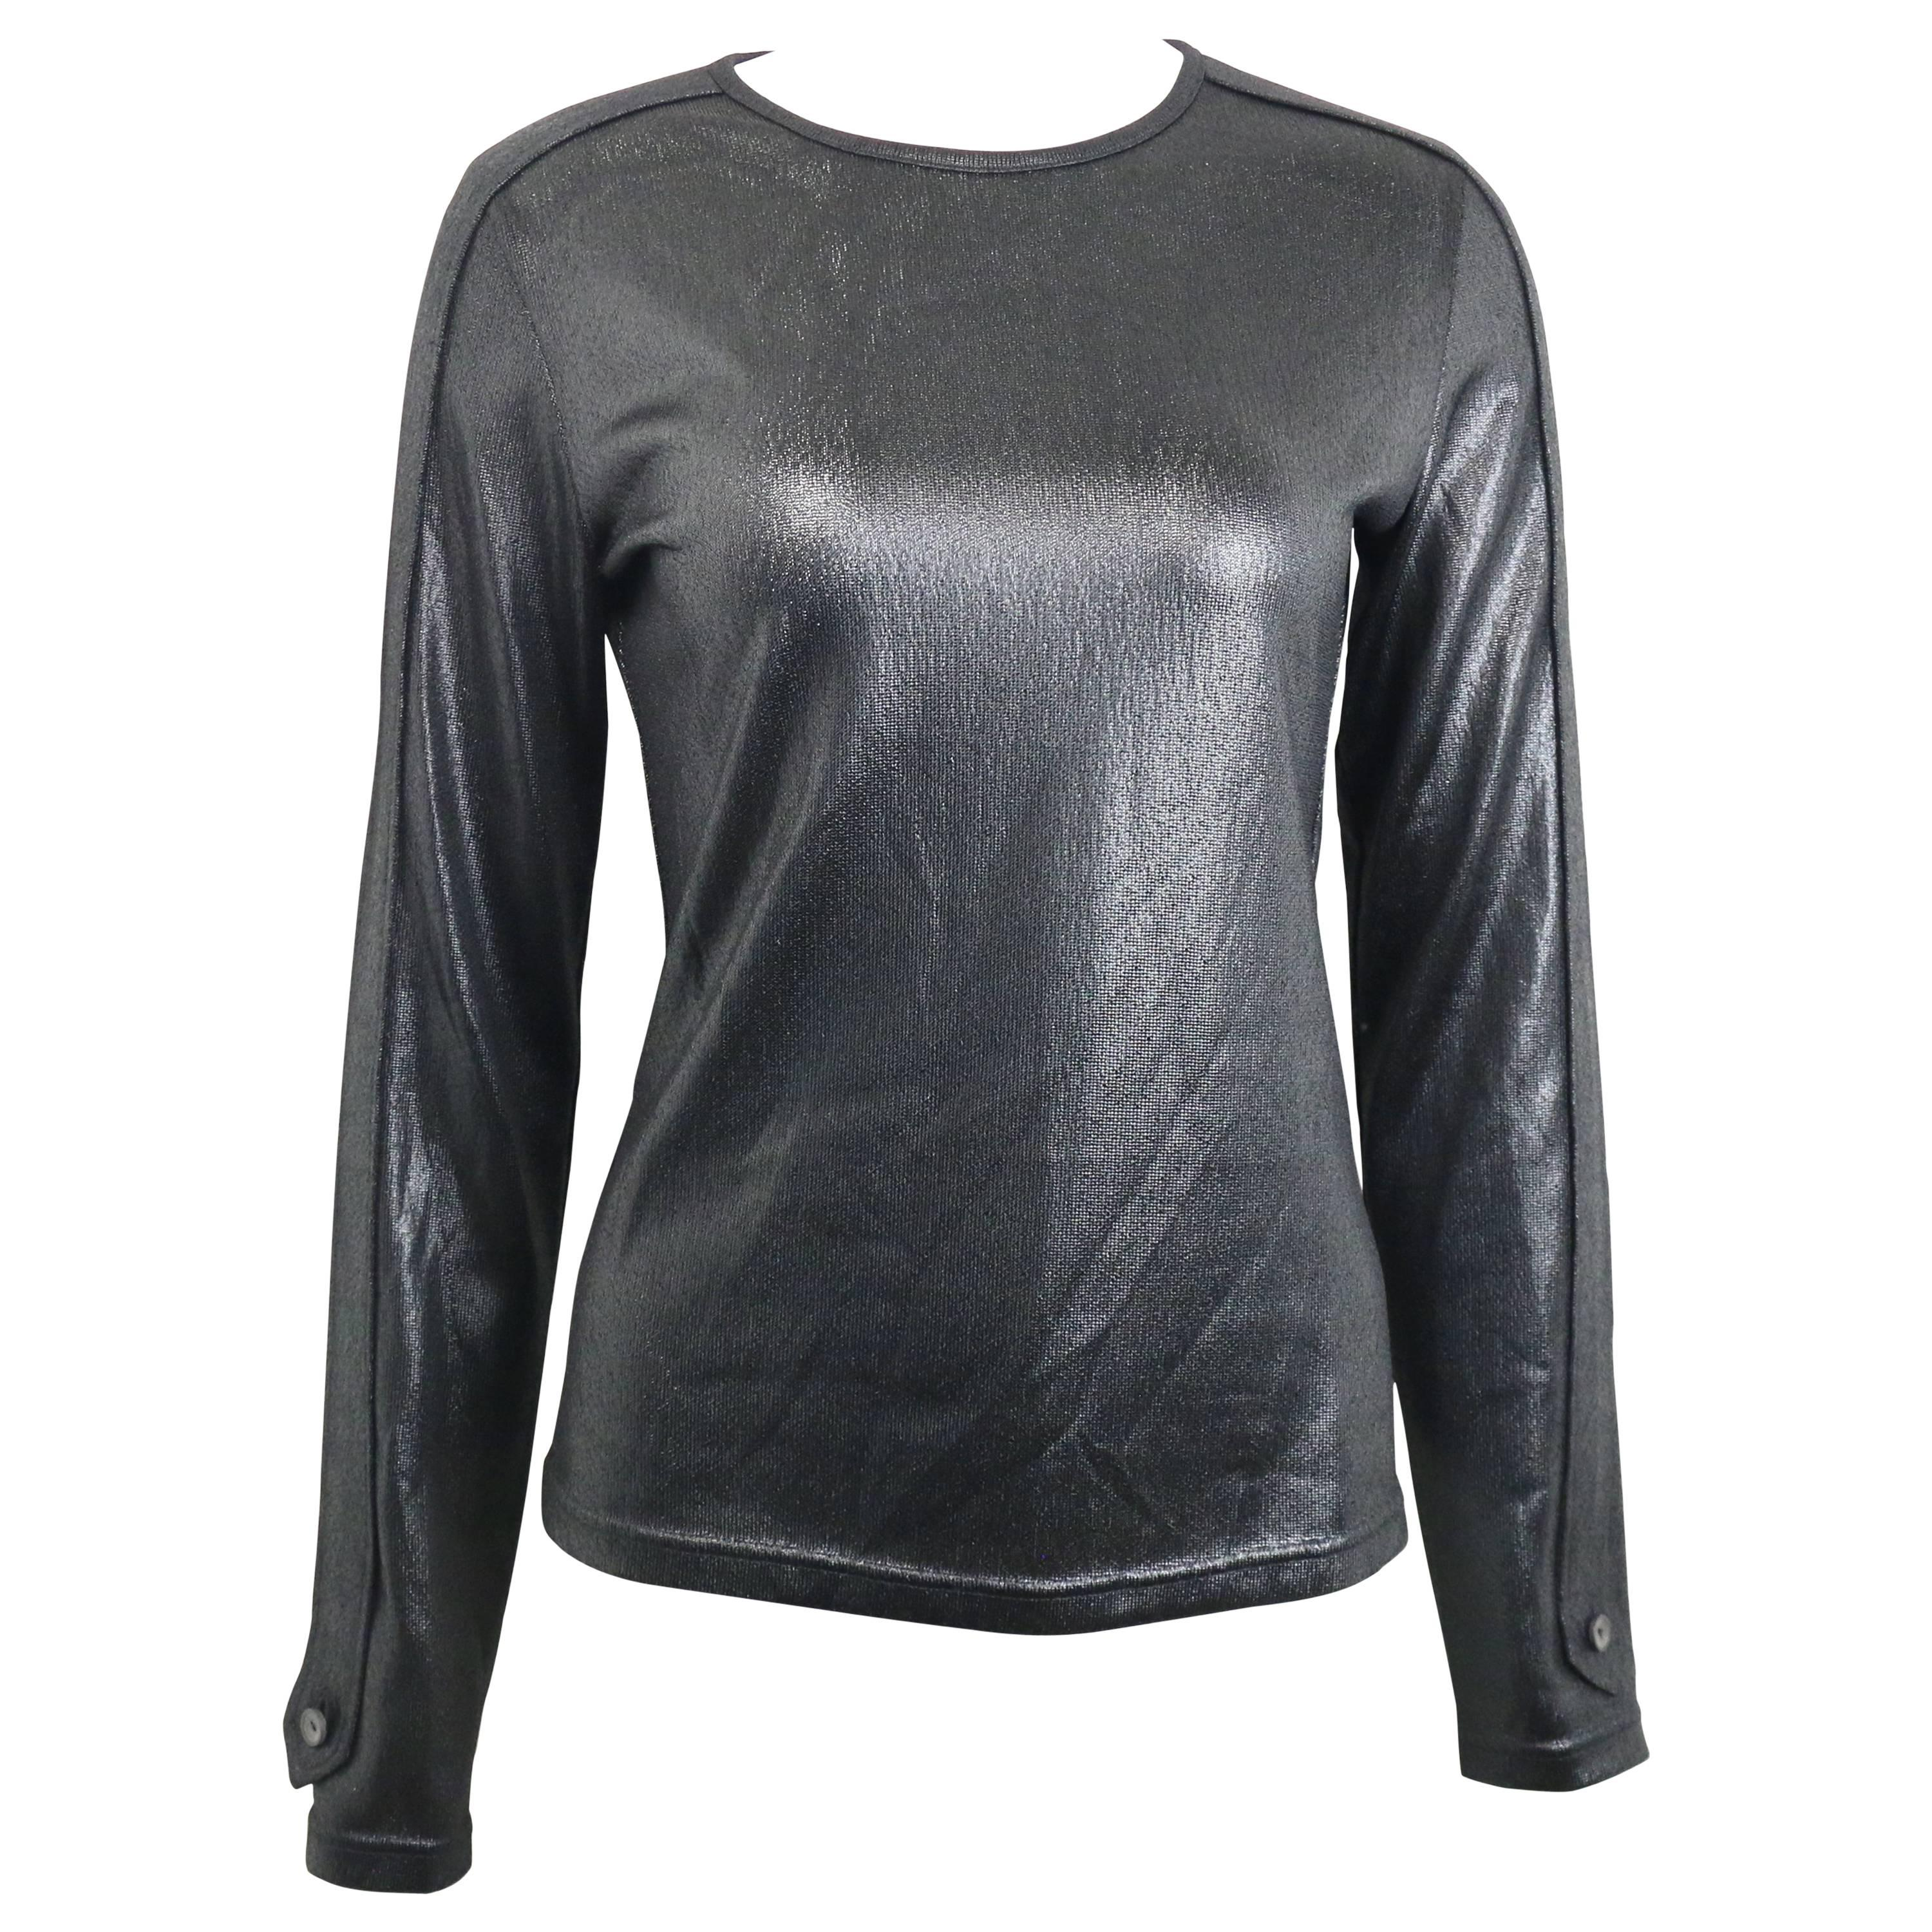 Gucci by Tom Ford Black Polyester Long Sleeves Top